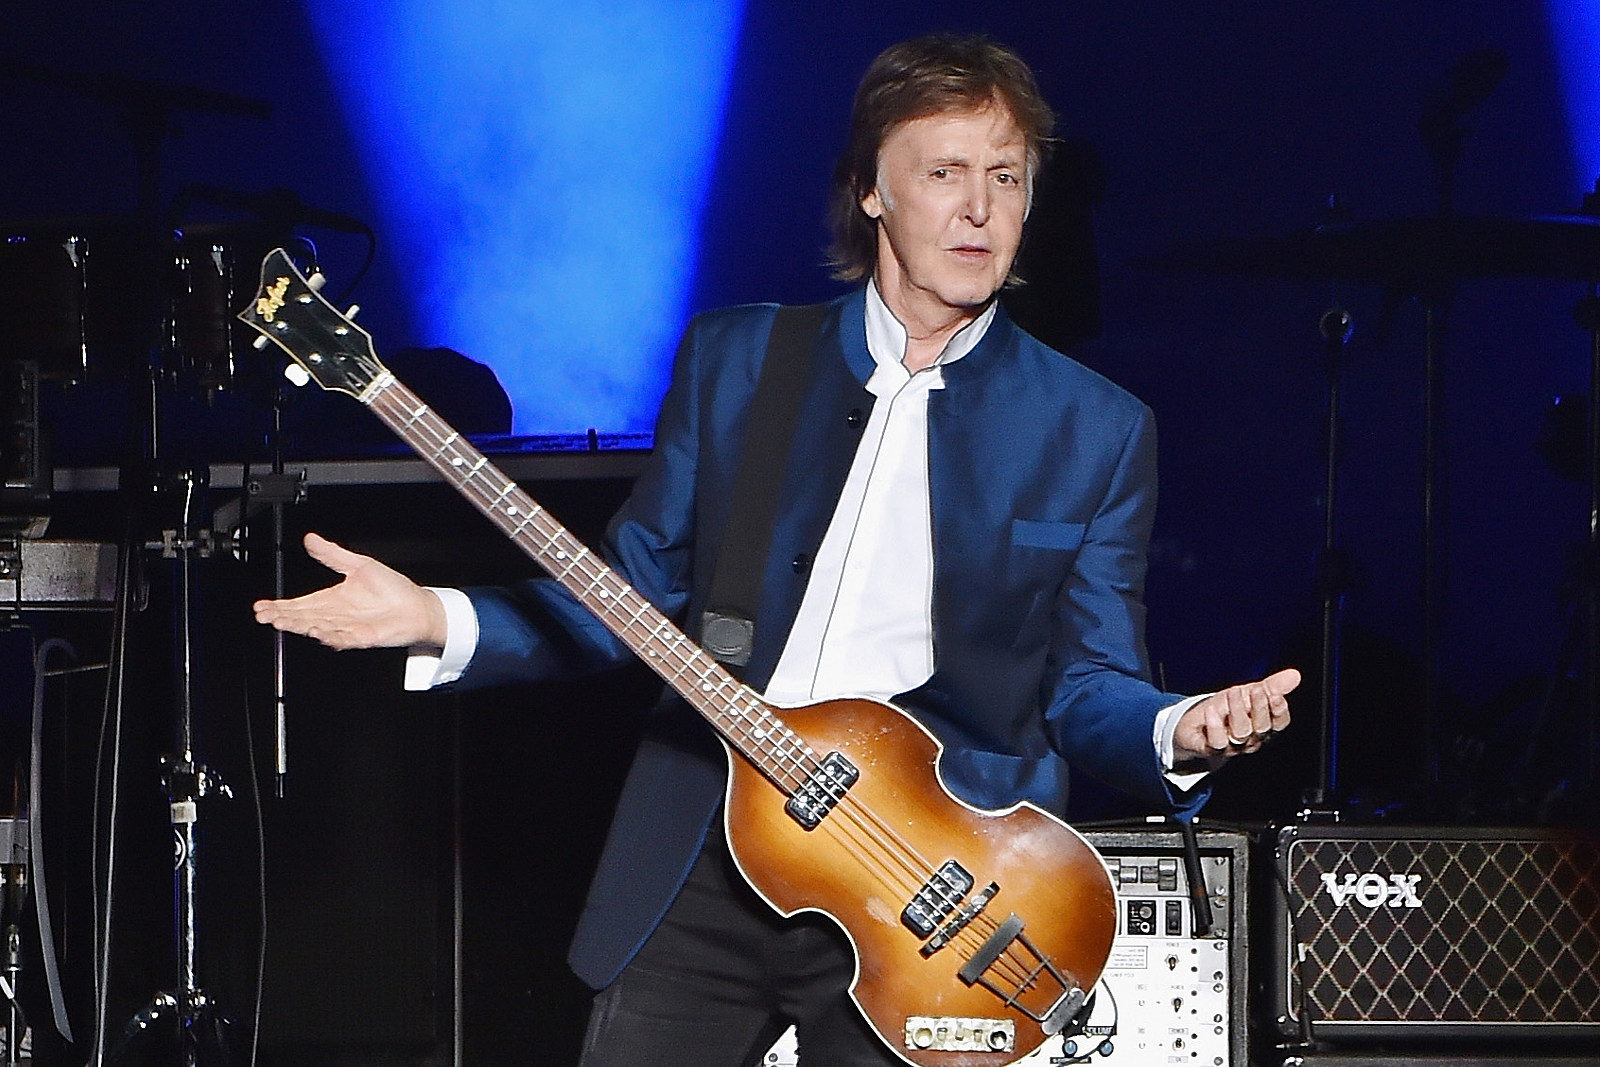 Paul McCartney Has a New Perspective on Beatles' 'Let It Be' Film